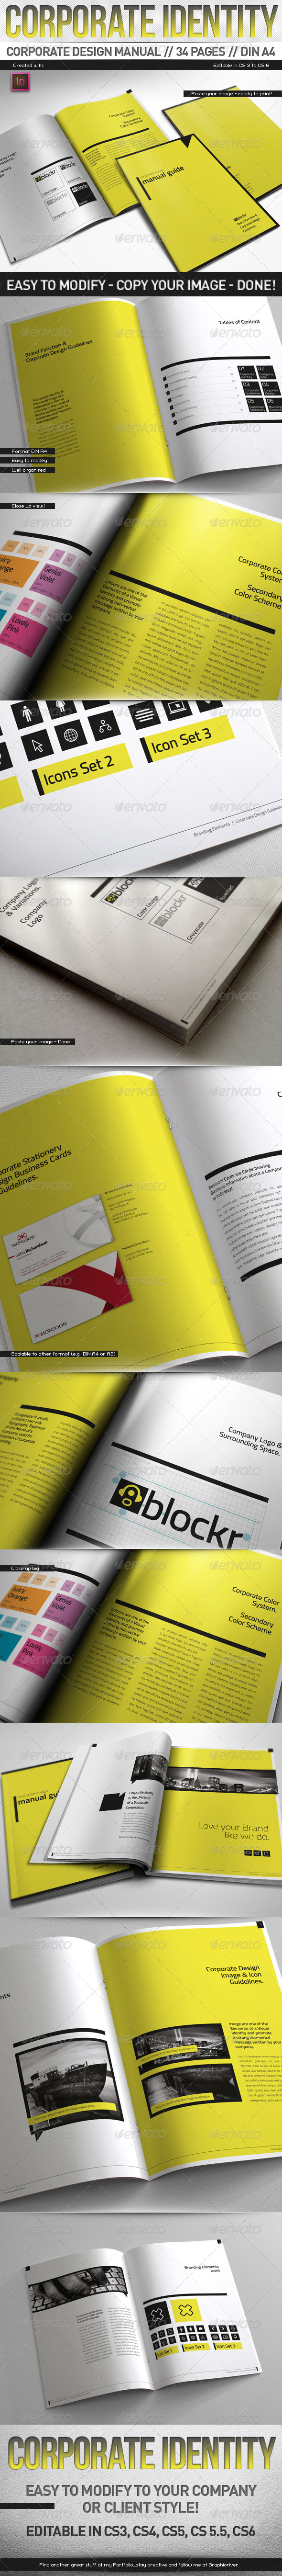 GraphicRiver Corporate Design Manual Guide DIN A4 34 Pages 4923120